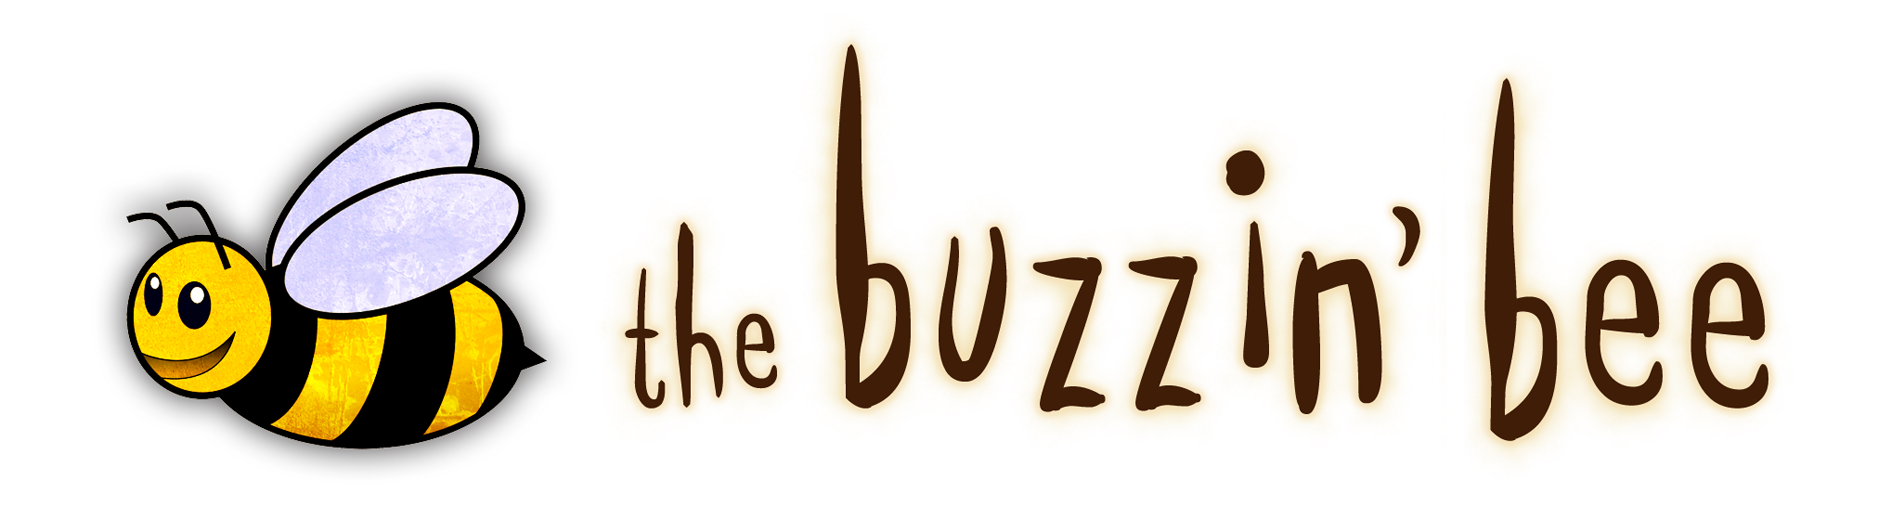 The Buzzin' Bee